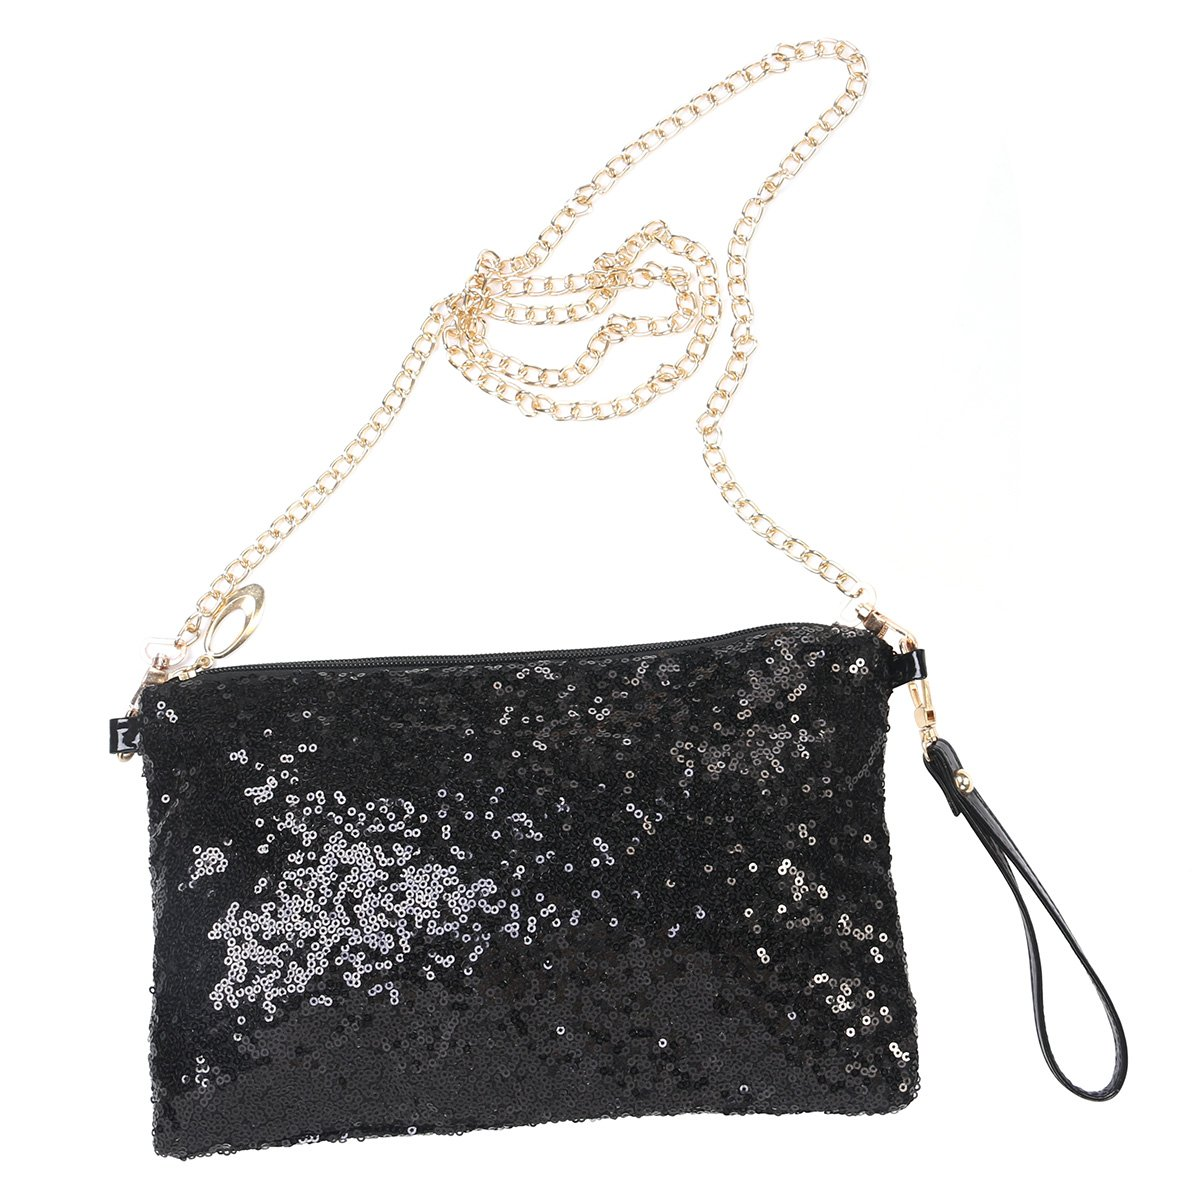 b3e662695a2ad Tinksky Sparkly Sequin Handbag Lady Party Evening Clutch Shoulder Bag,  Mother's Day gift or gift for women (Black)